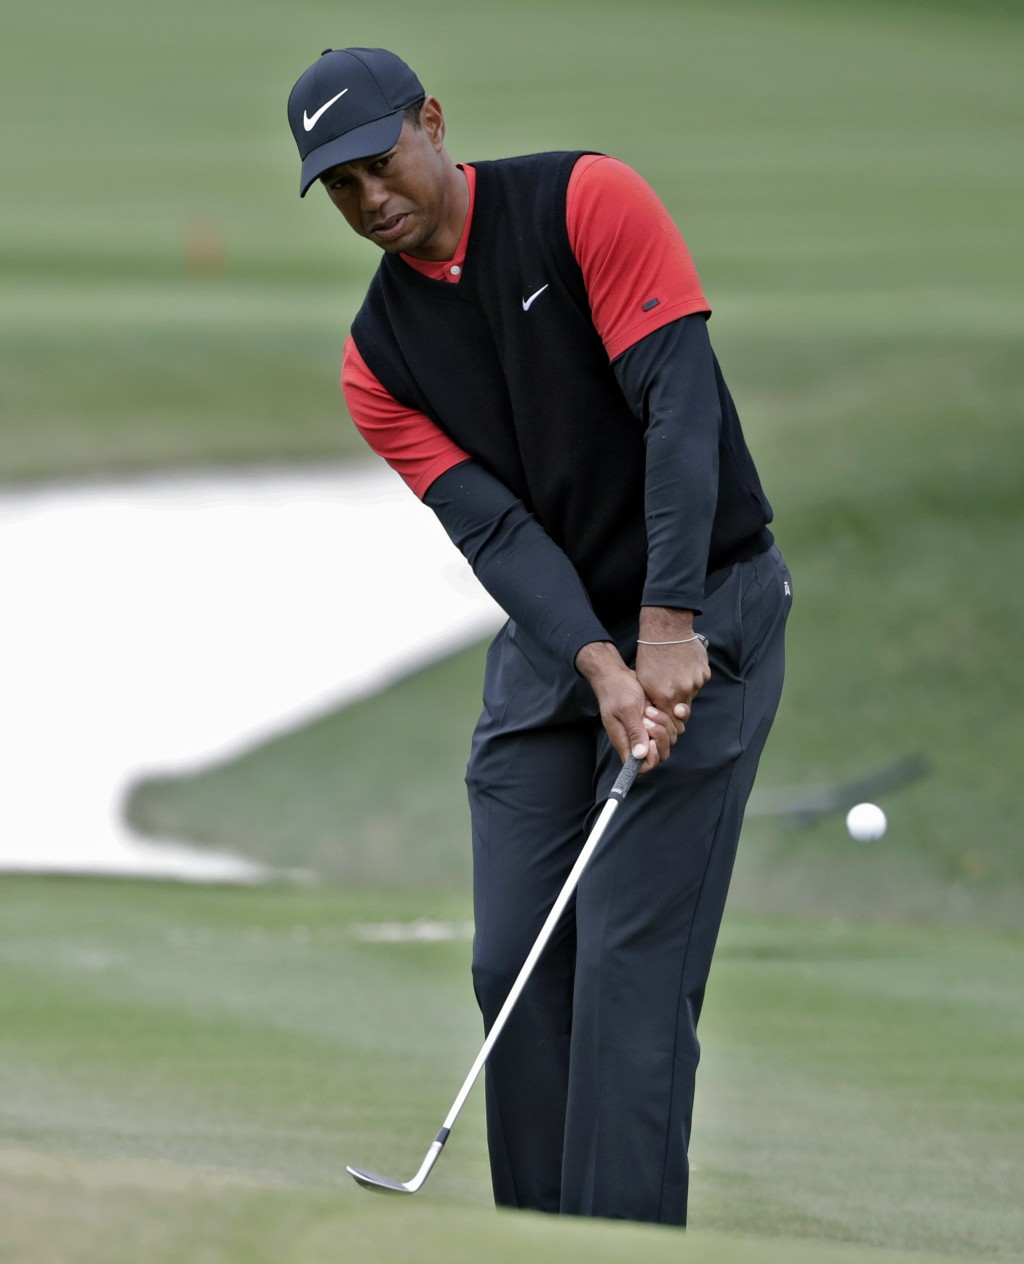 Tiger Woods chips onto the ninth green during the final round of The Players Championship golf tournament Sunday, March 17, 2019, in Ponte Vedra Beach...